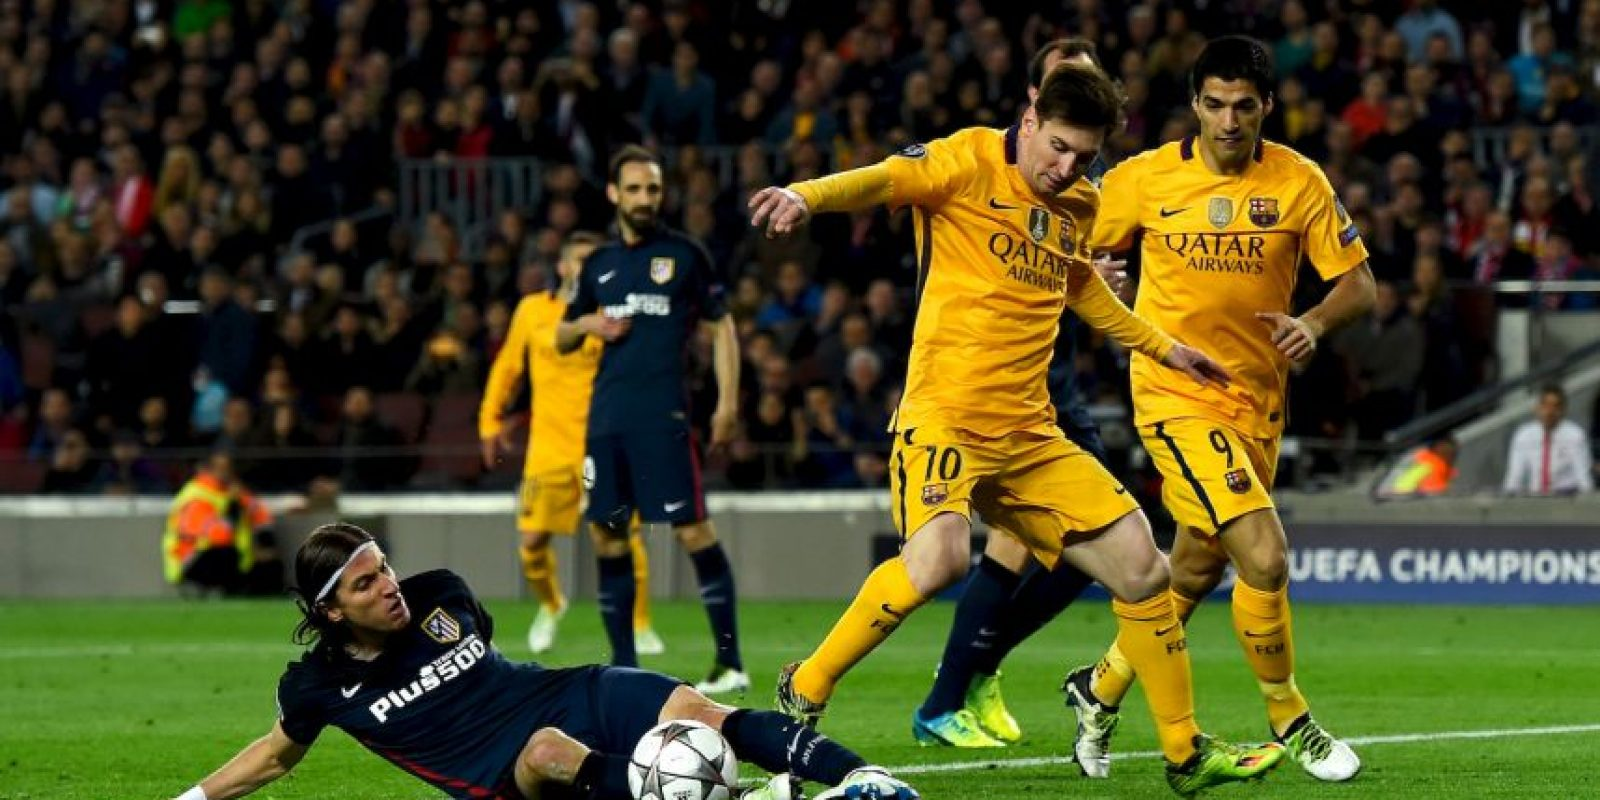 Atlético de Madrid vs. Barcelona Foto: Getty Images